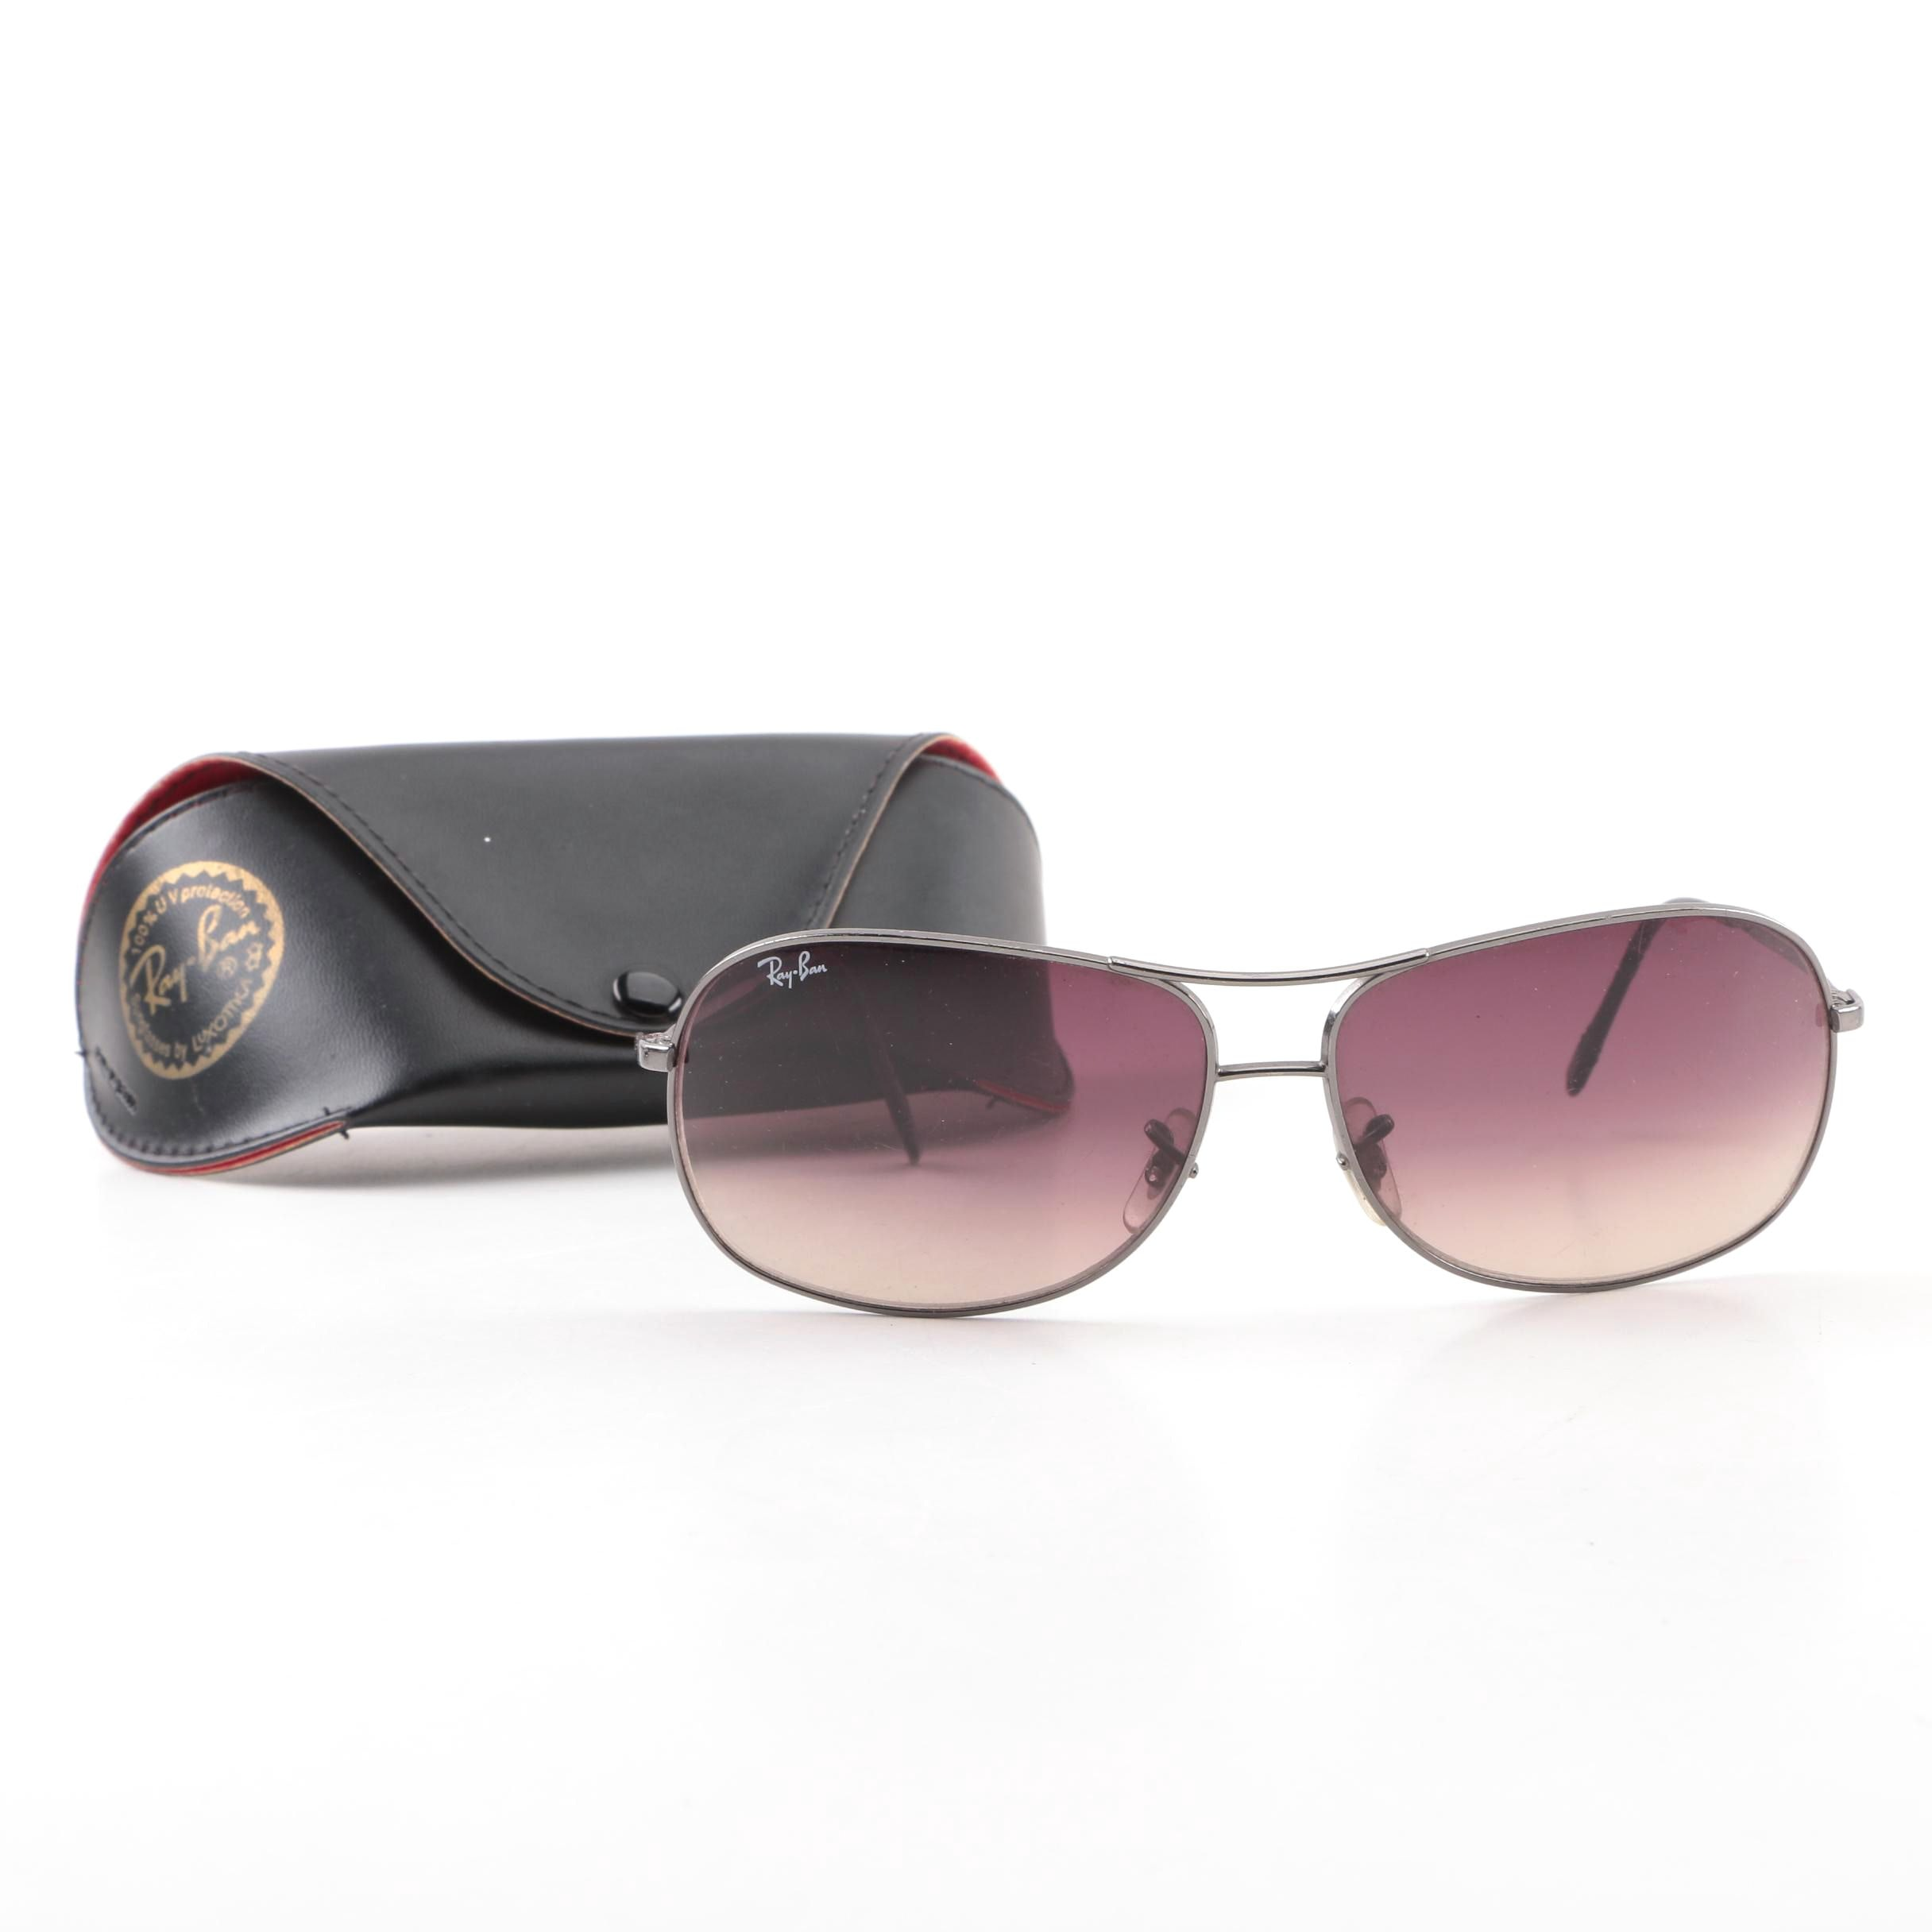 Ray-Ban 3267 Aviator Style Sunglasses with Case